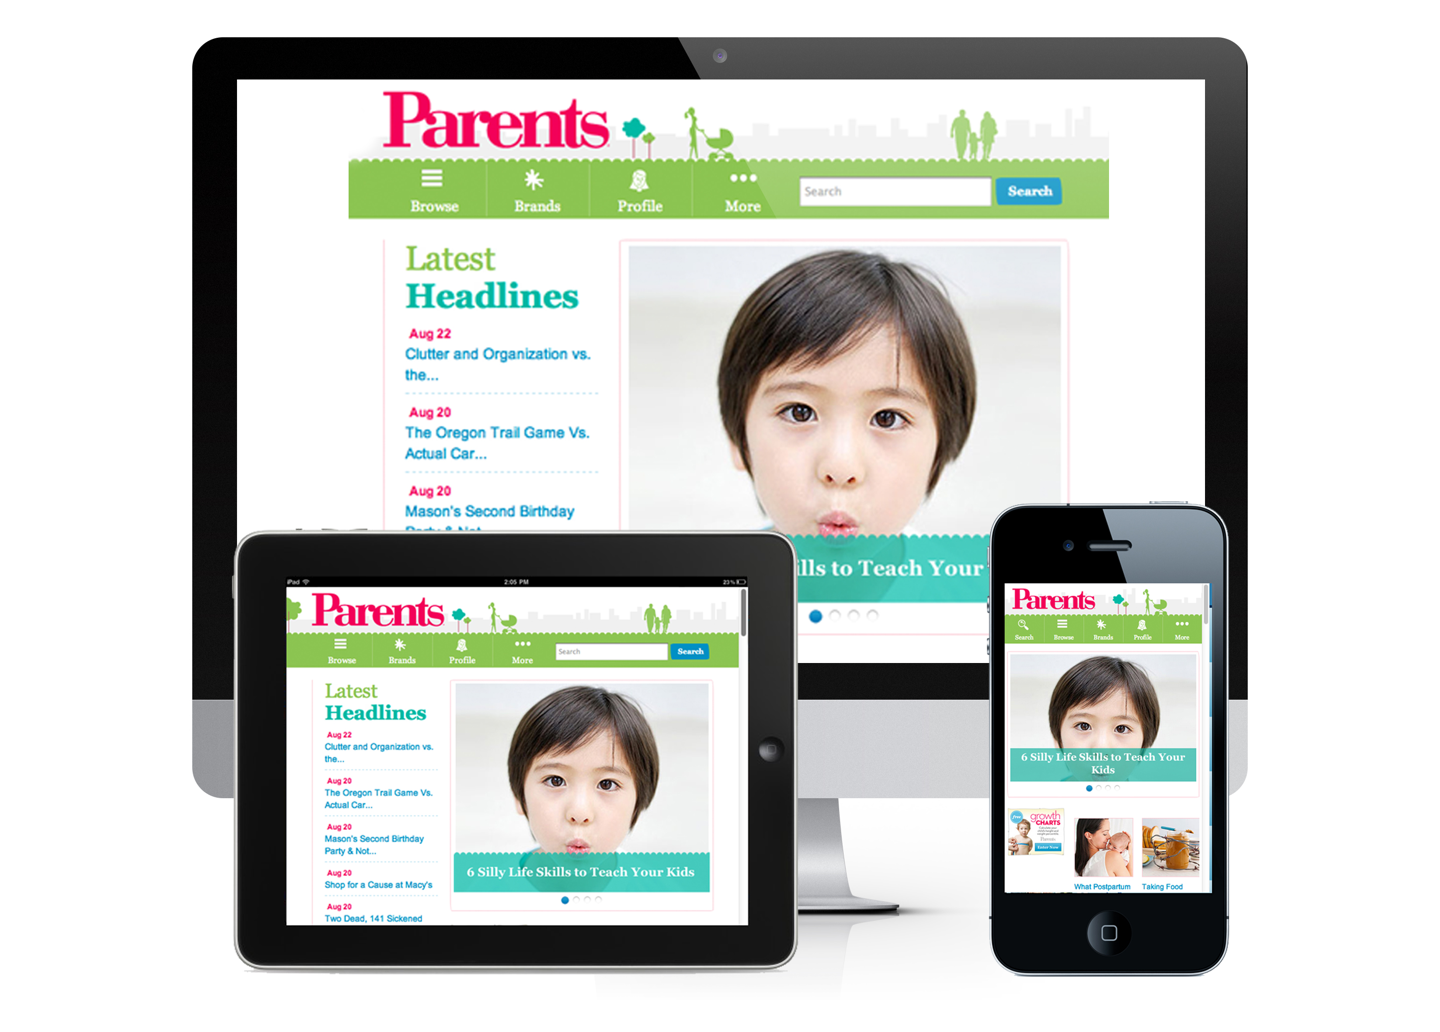 Parent.com website on devices